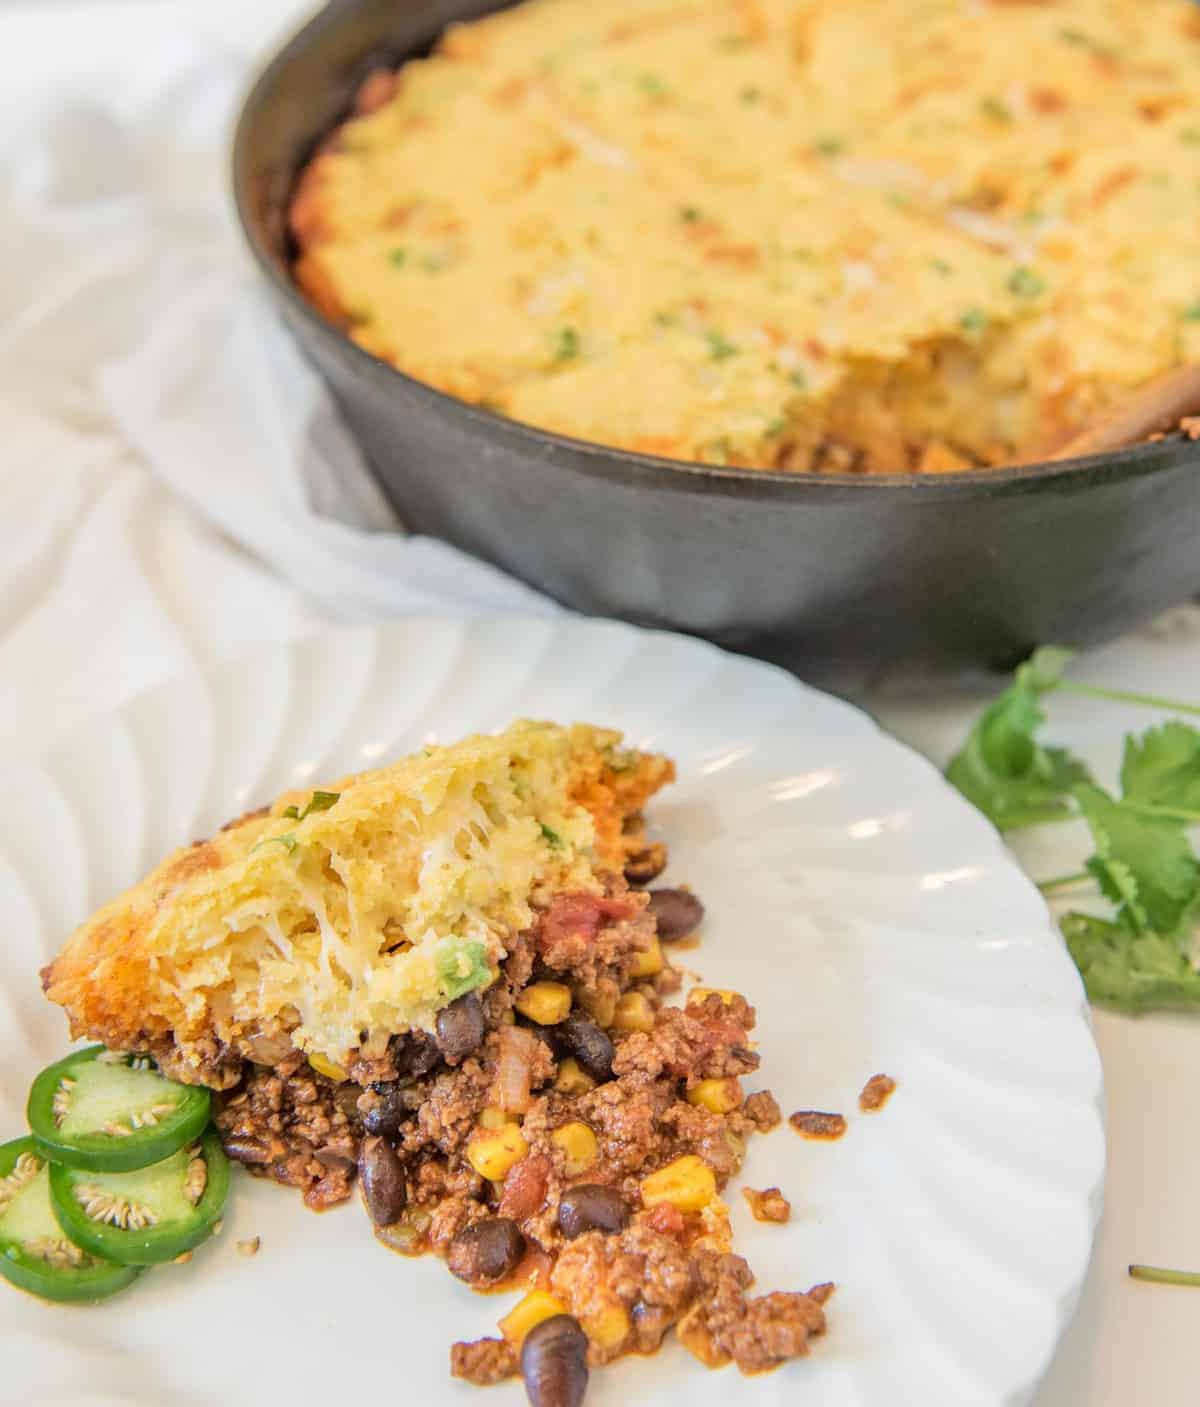 One Pan Tamale pie is made with a rich meat and vegetable filling topped with a golden cornbread crust that has cheese and green onions in it, all made in one skillet.